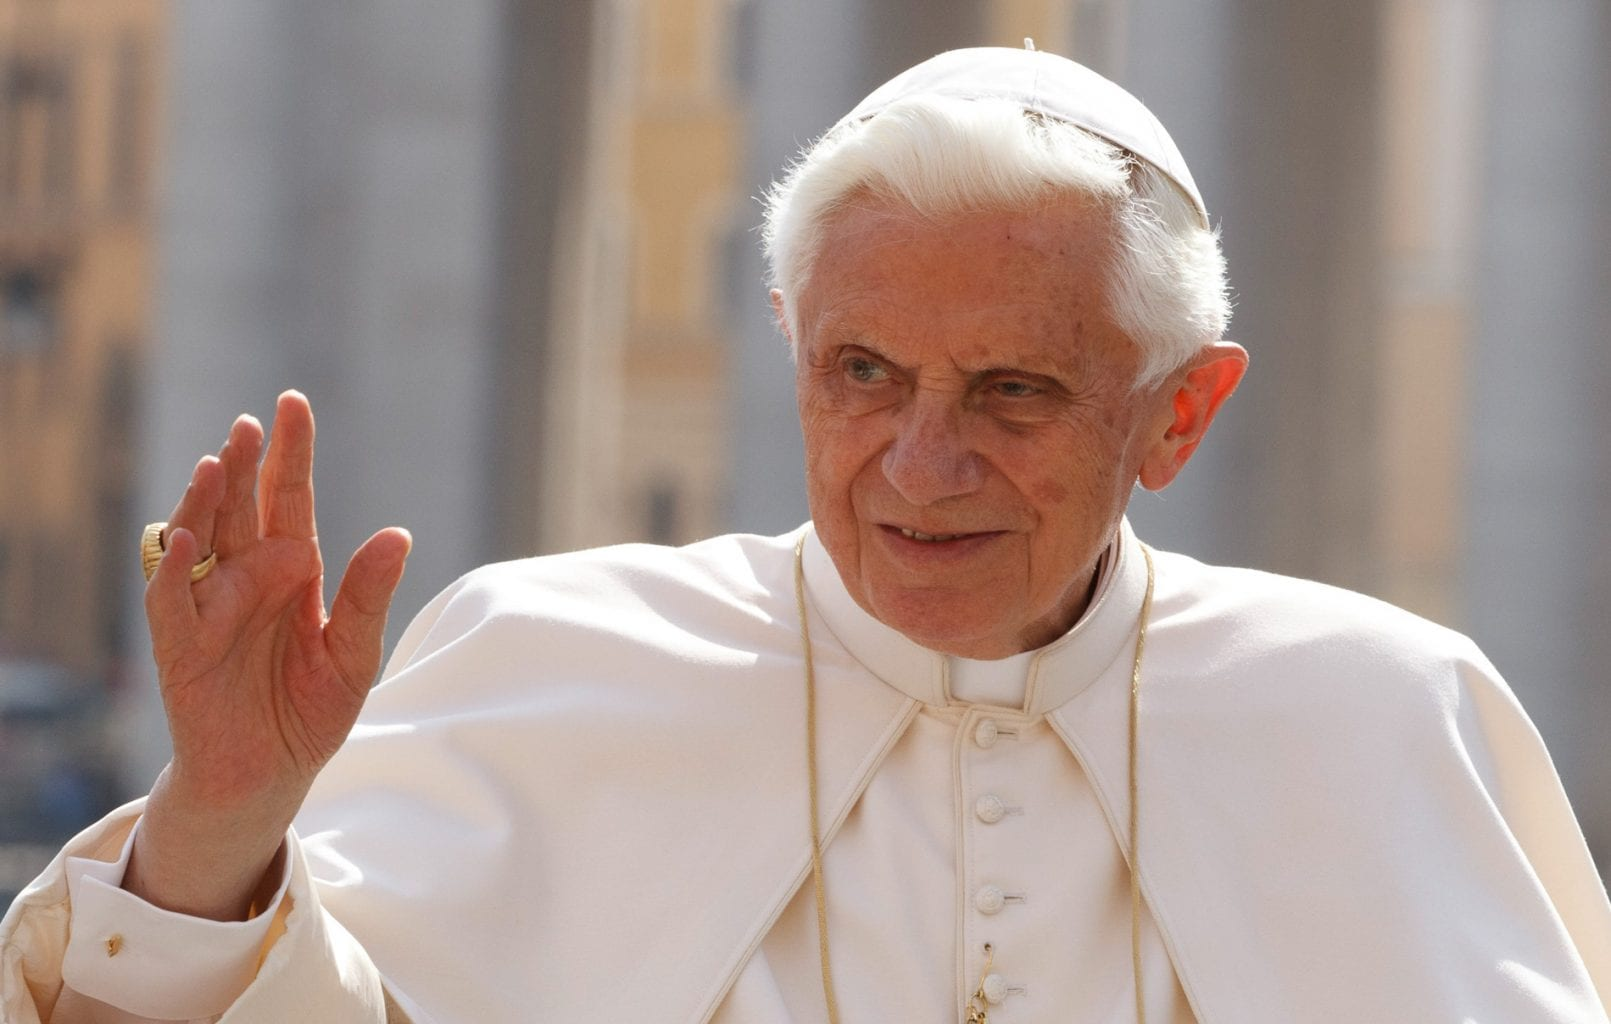 Bibliography of the Pre-Papal Writings of Benedict XVI